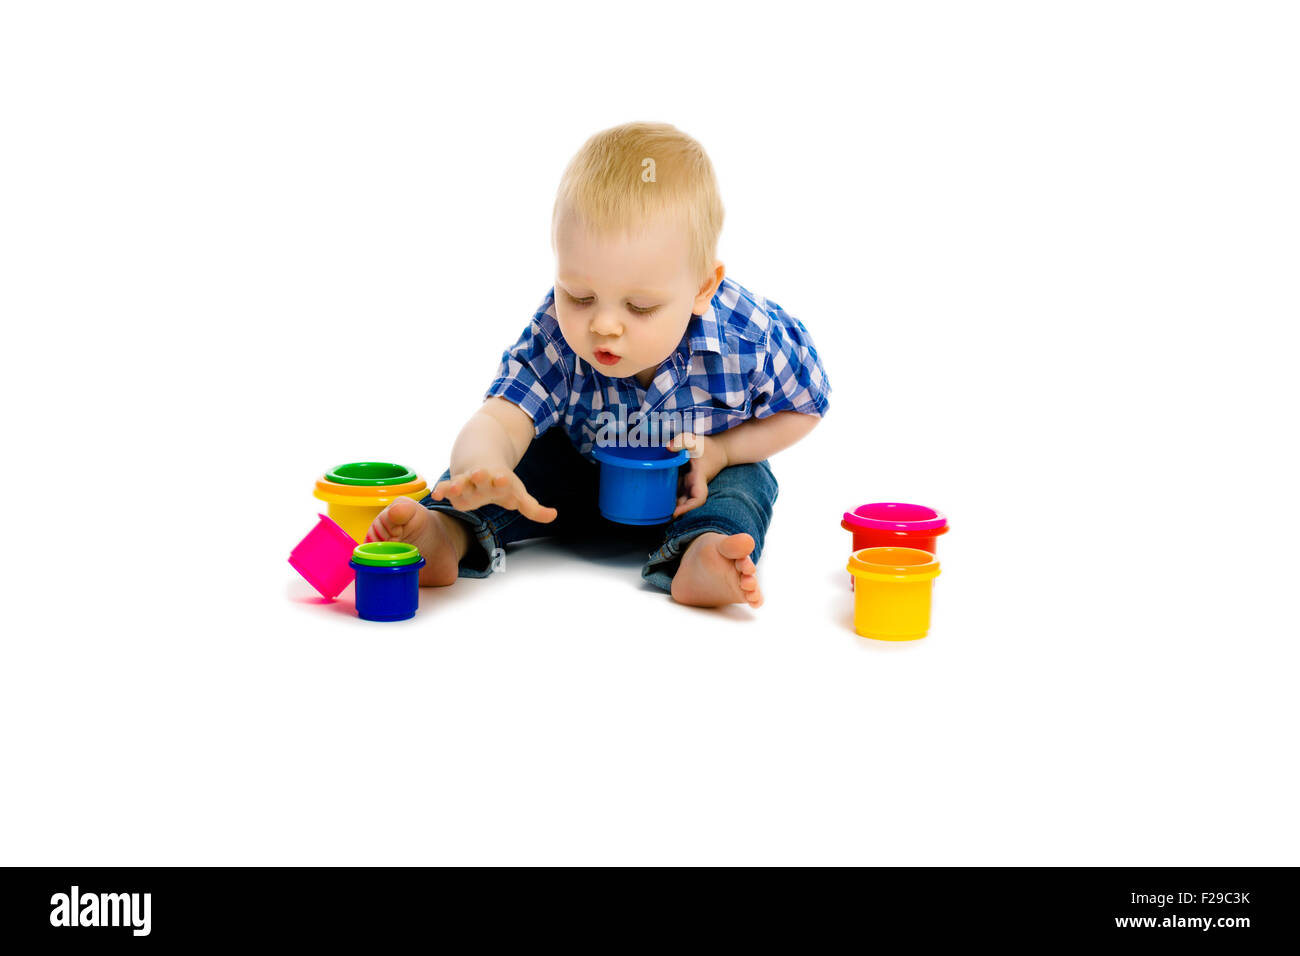 baby boy sitting on a white floor with toys - Stock Image